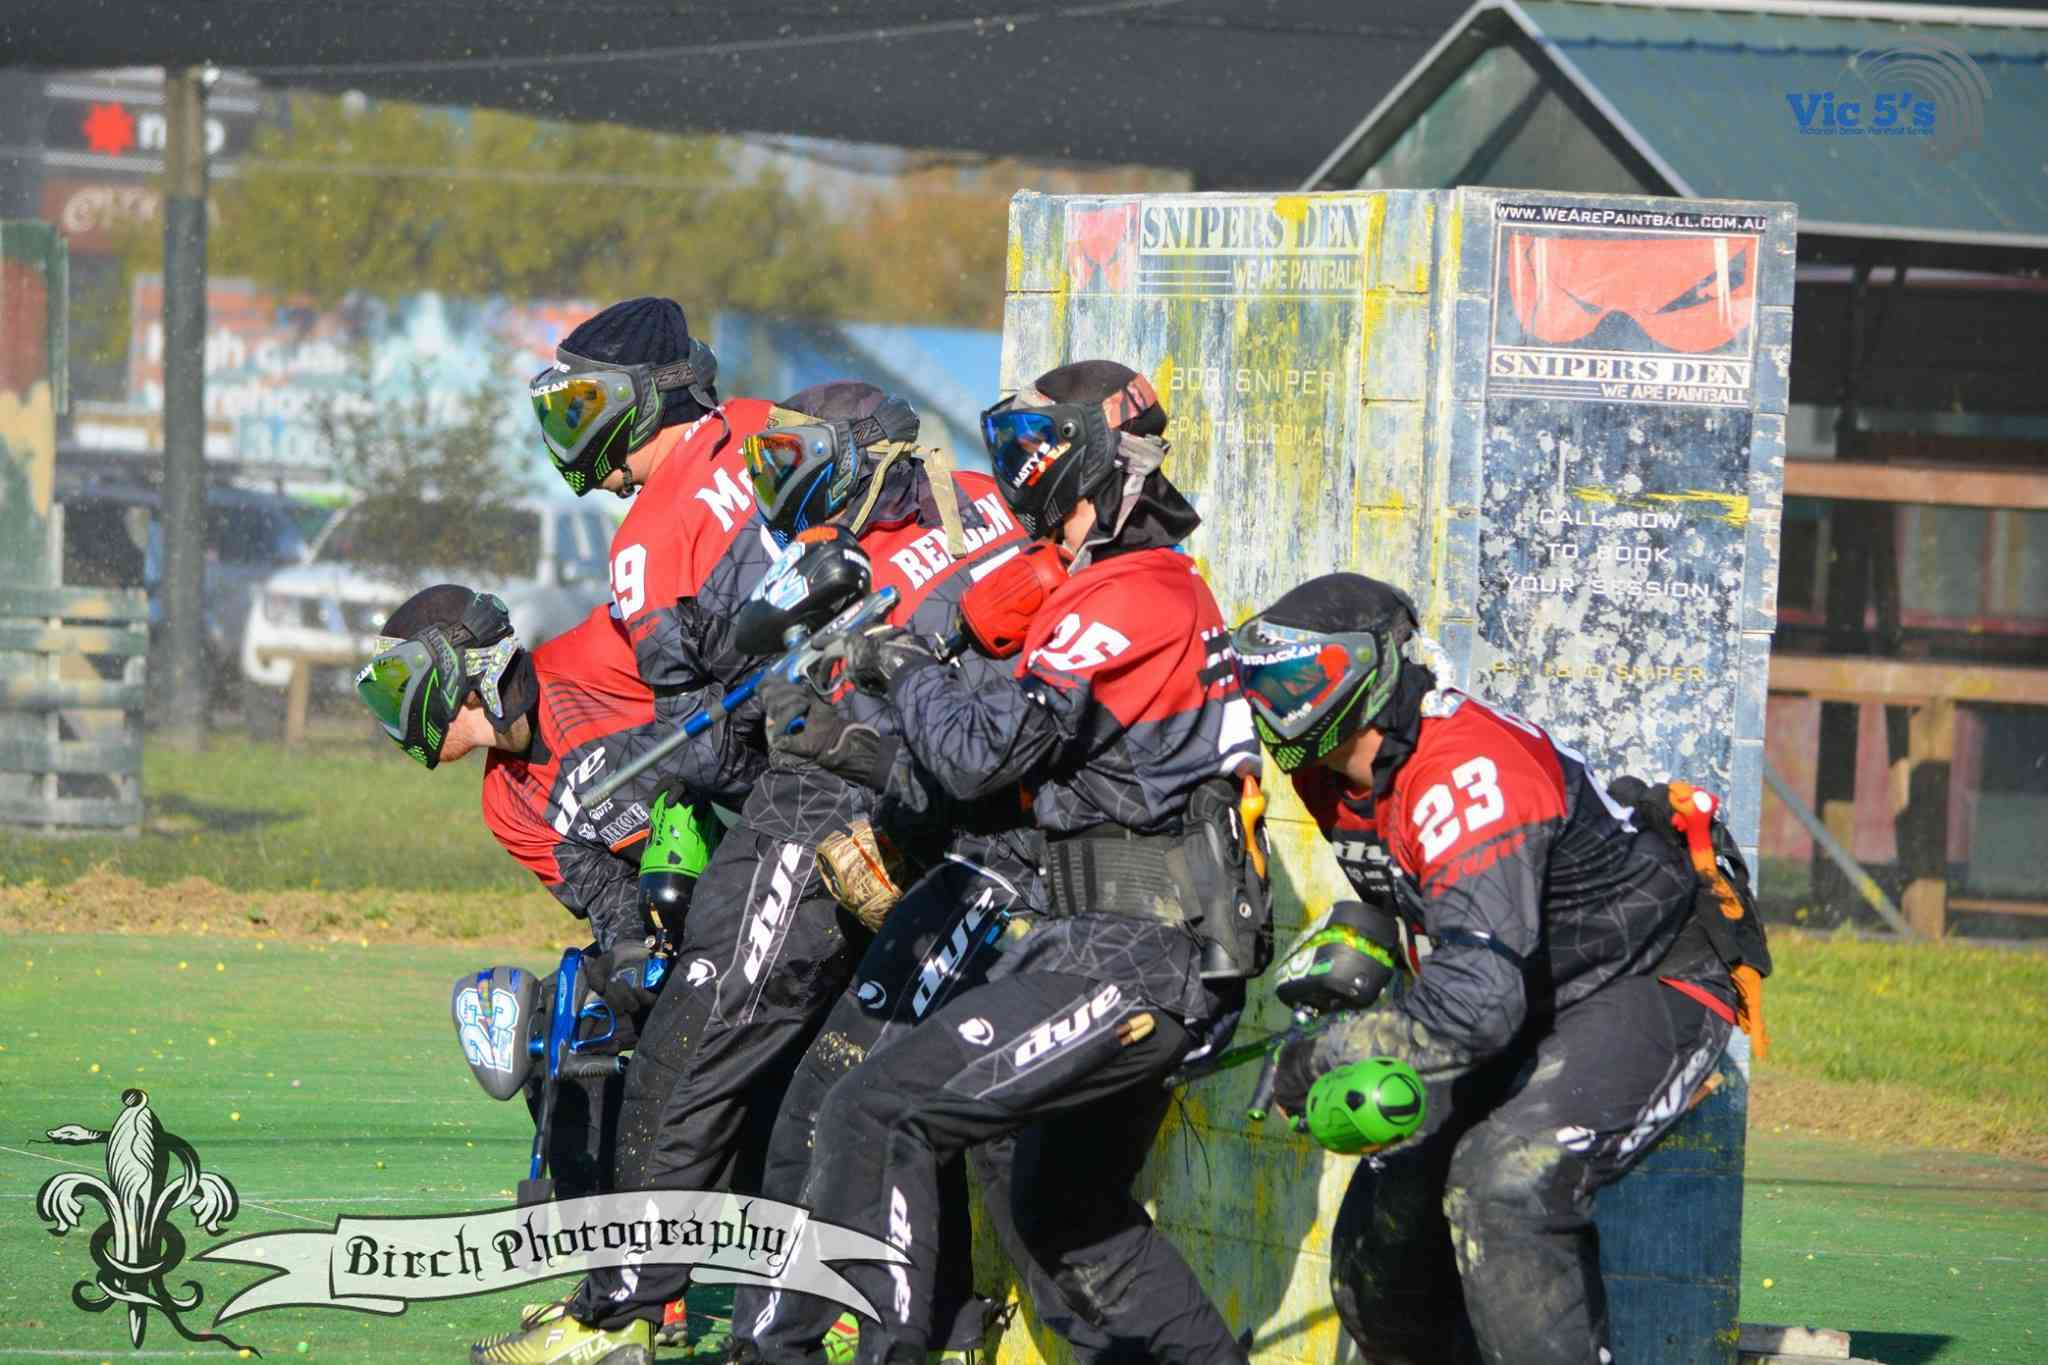 Vic5s Paintball Tournament at Snipers Den